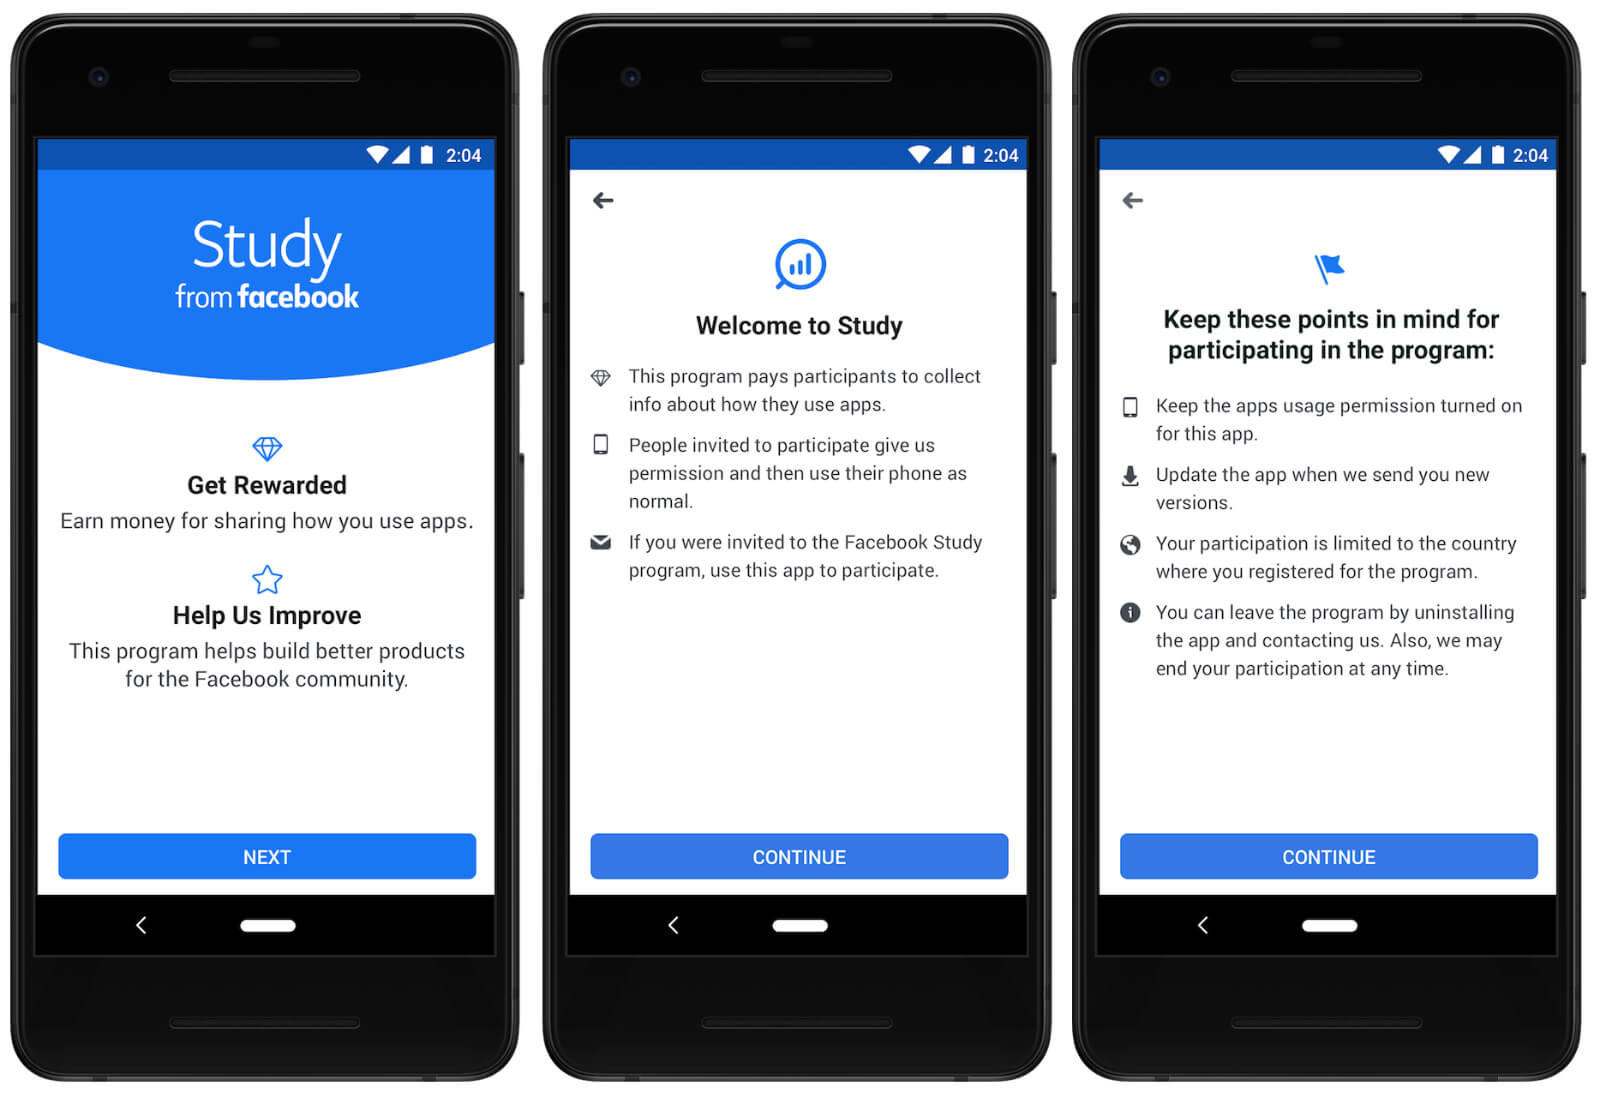 Study from Facebook is a research app that will pay you in